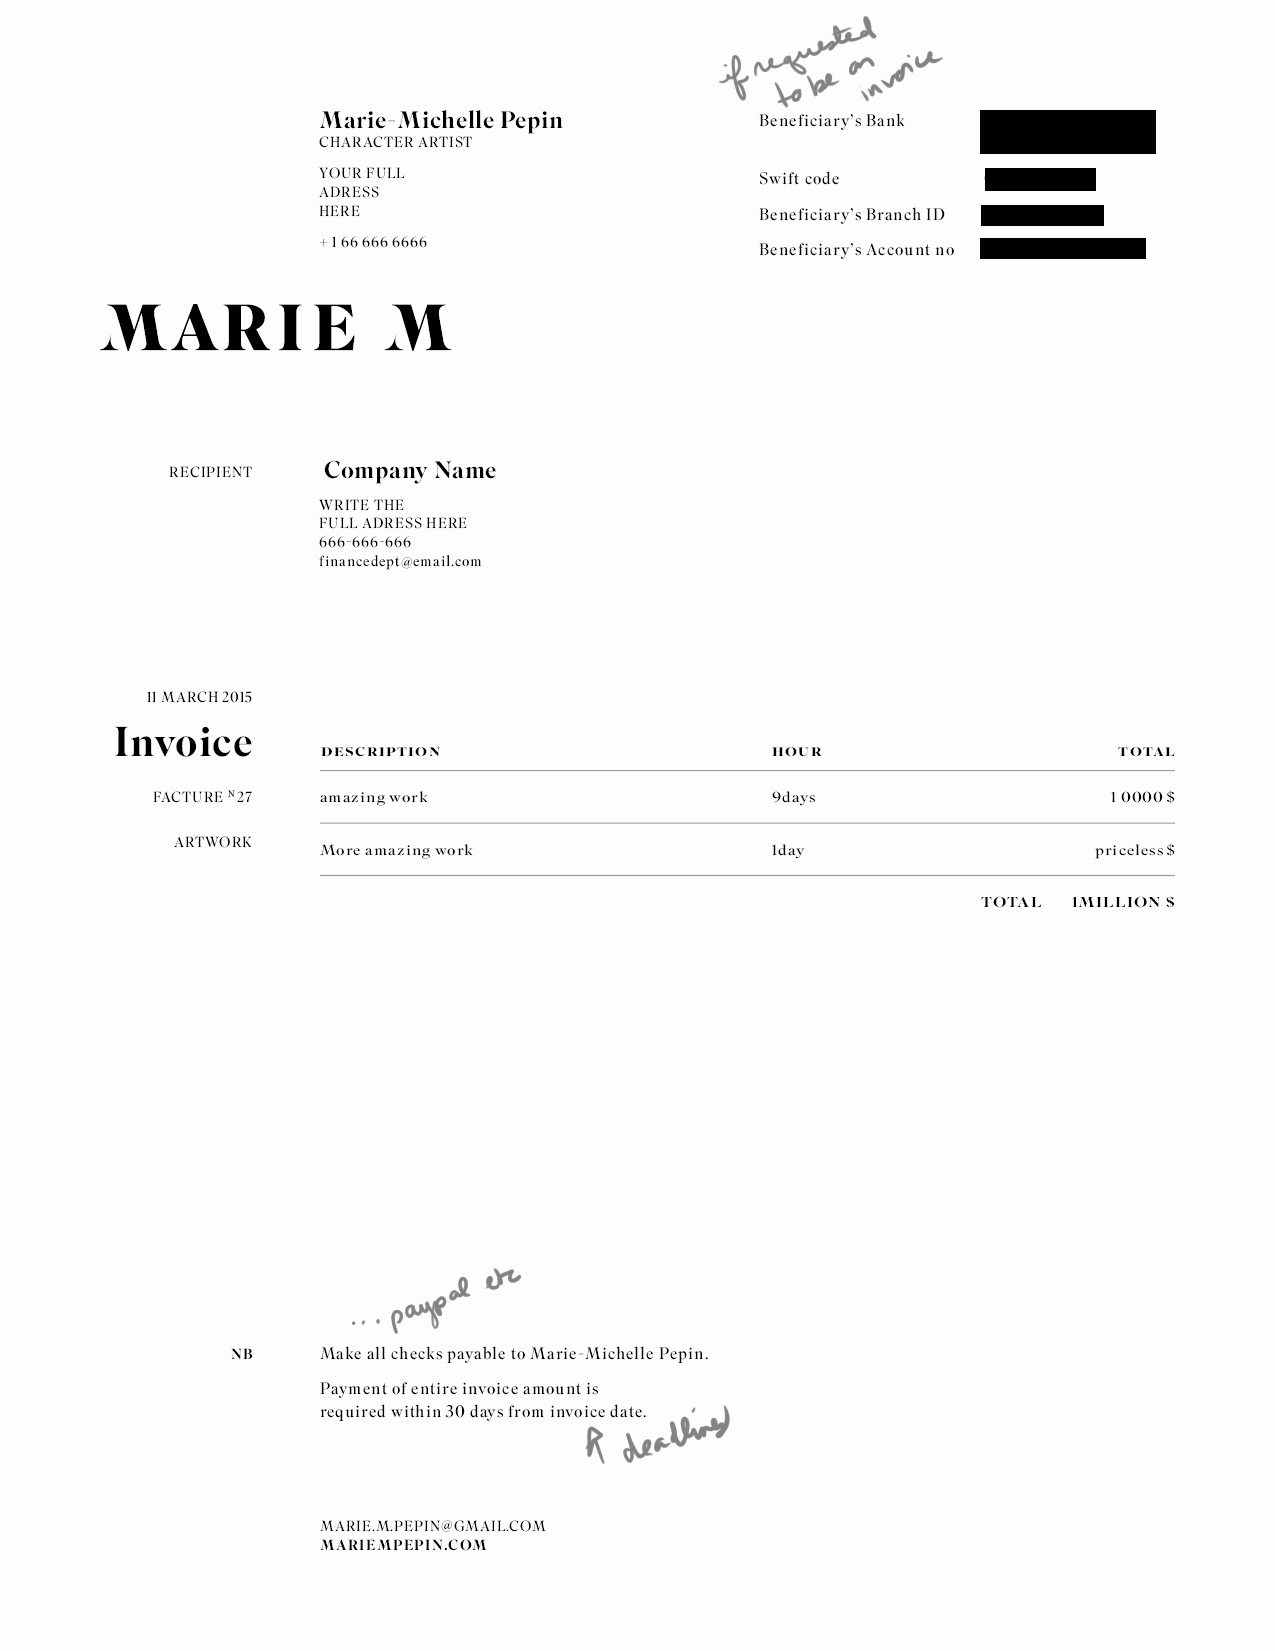 Makeup Artist Invoice Template Luxury Artist Invoice Samples Spreadsheet Templates for Busines